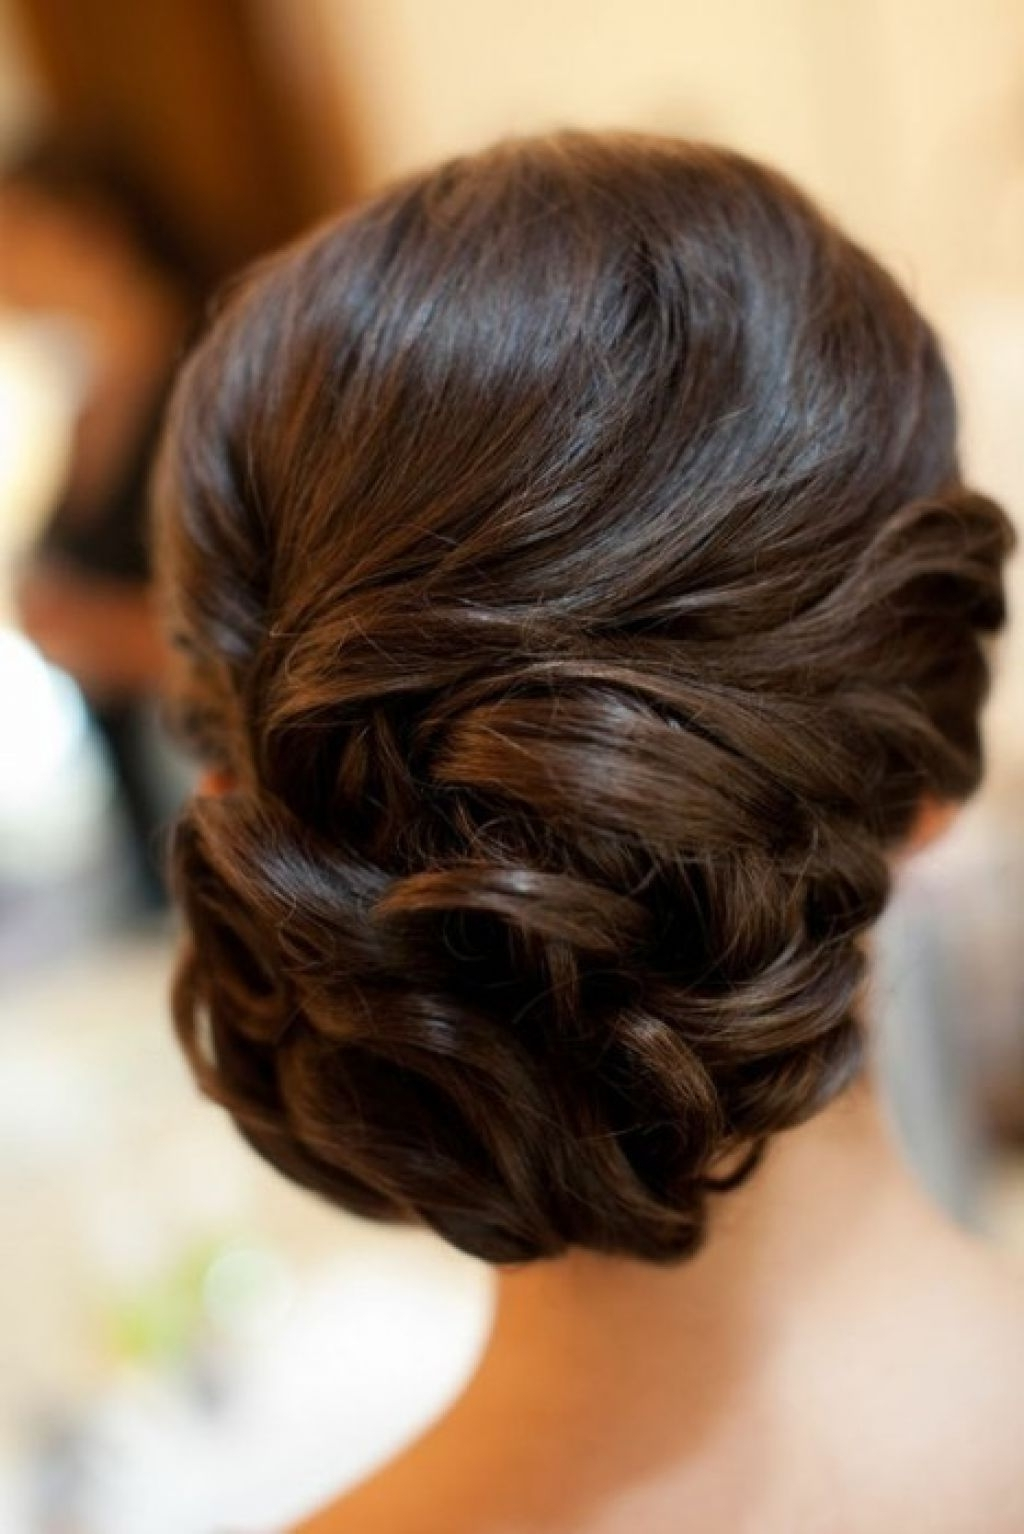 Bridesmaid Updo Hairstyles For Long Hair – Women Medium Haircut Within Bridal Updo Hairstyles For Long Hair (View 8 of 15)